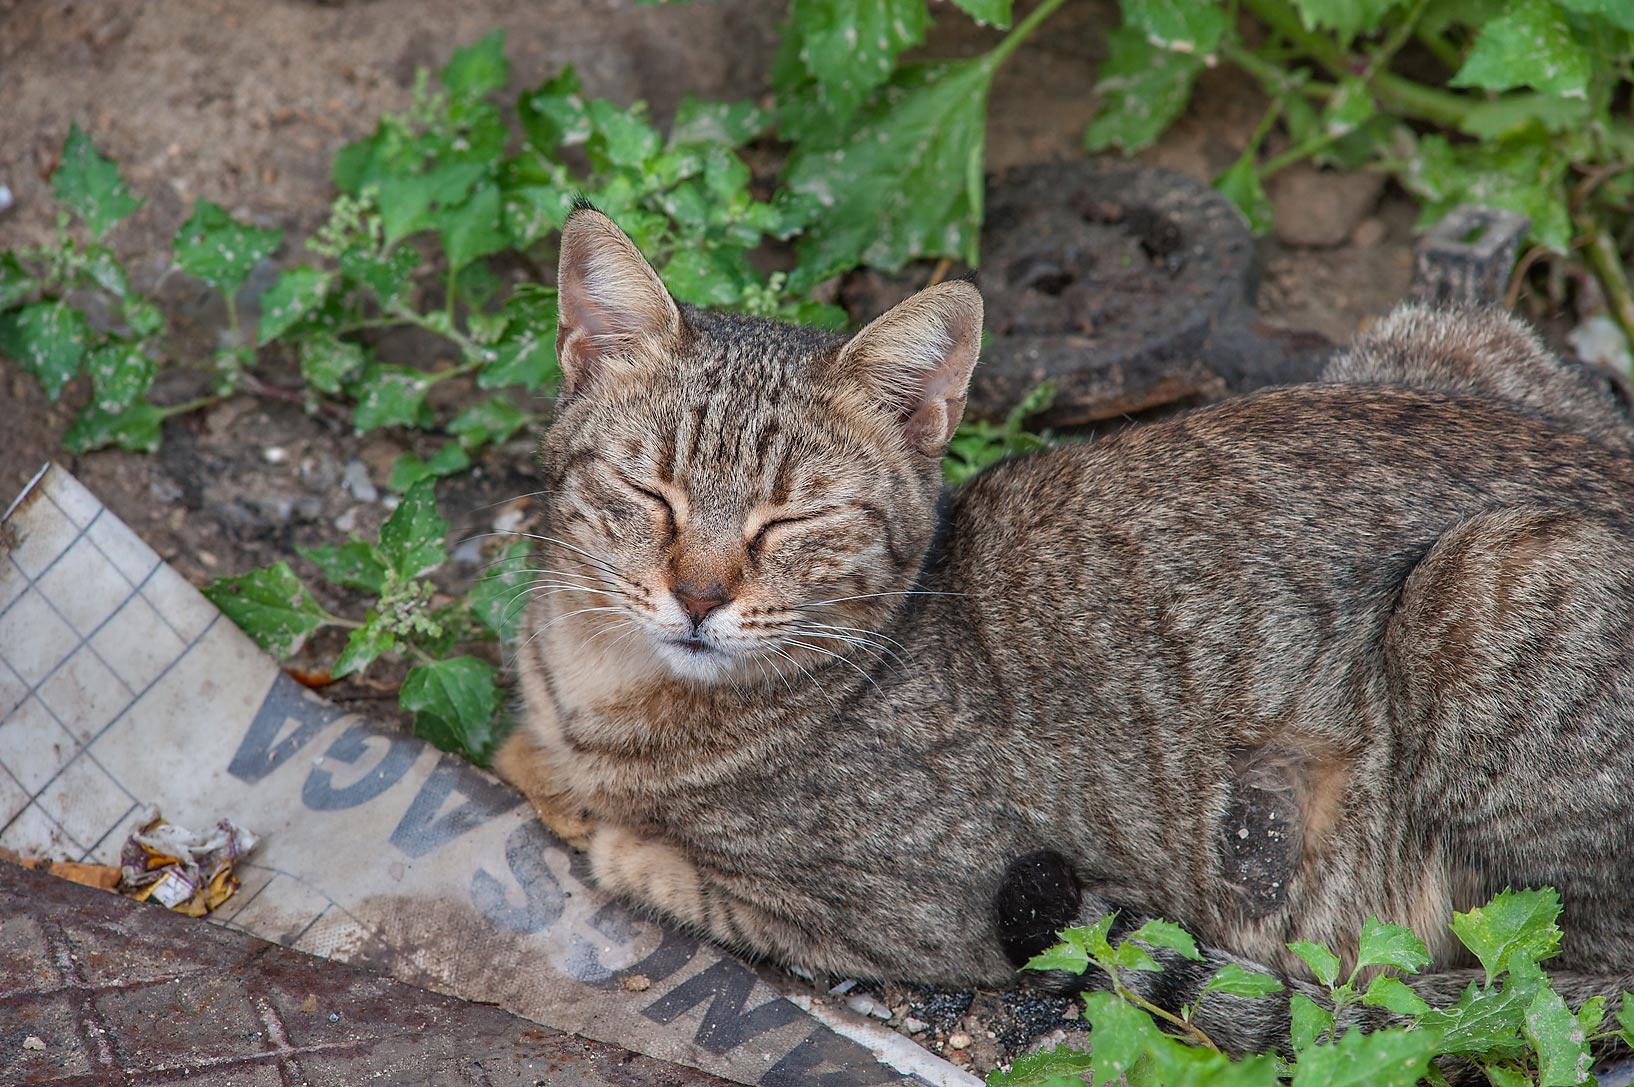 Sleeping tabby cat near Umm Wishad St. in Musheirib area. Doha, Qatar